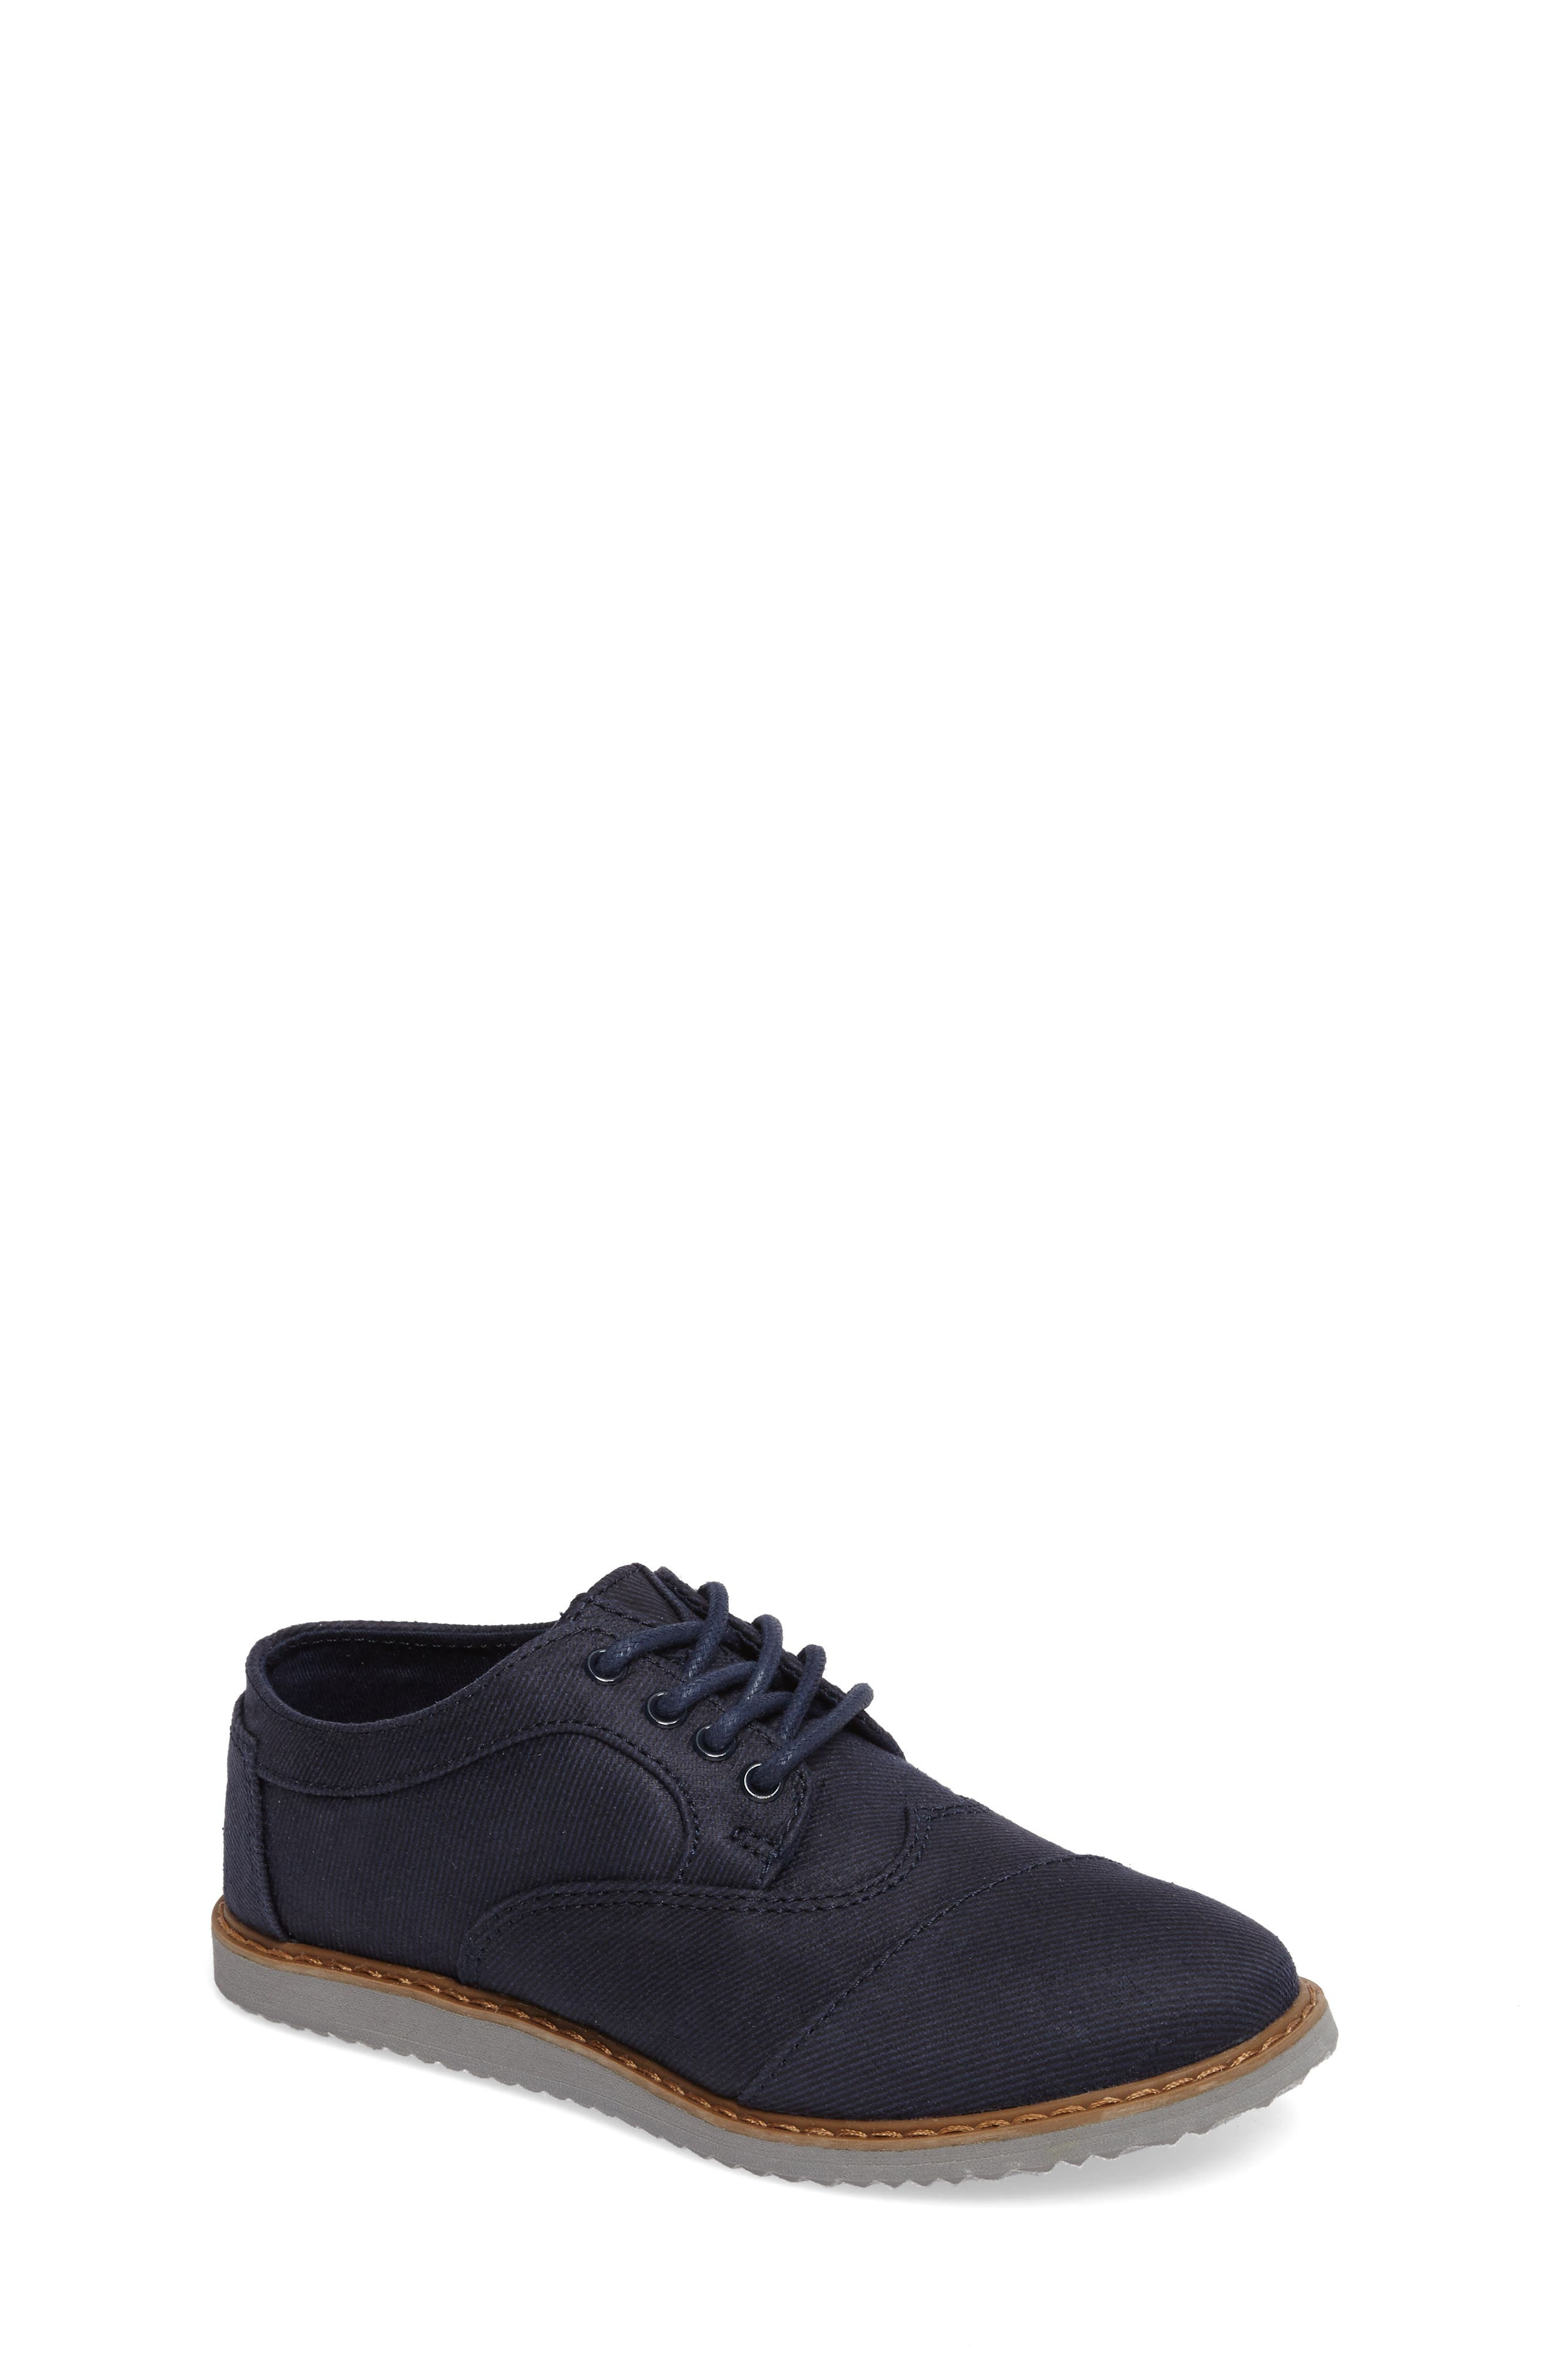 TOMS Brogue Cap Toe Wingtip Oxford (Baby, Walker, Toddler, Little Kid & Big Kid)